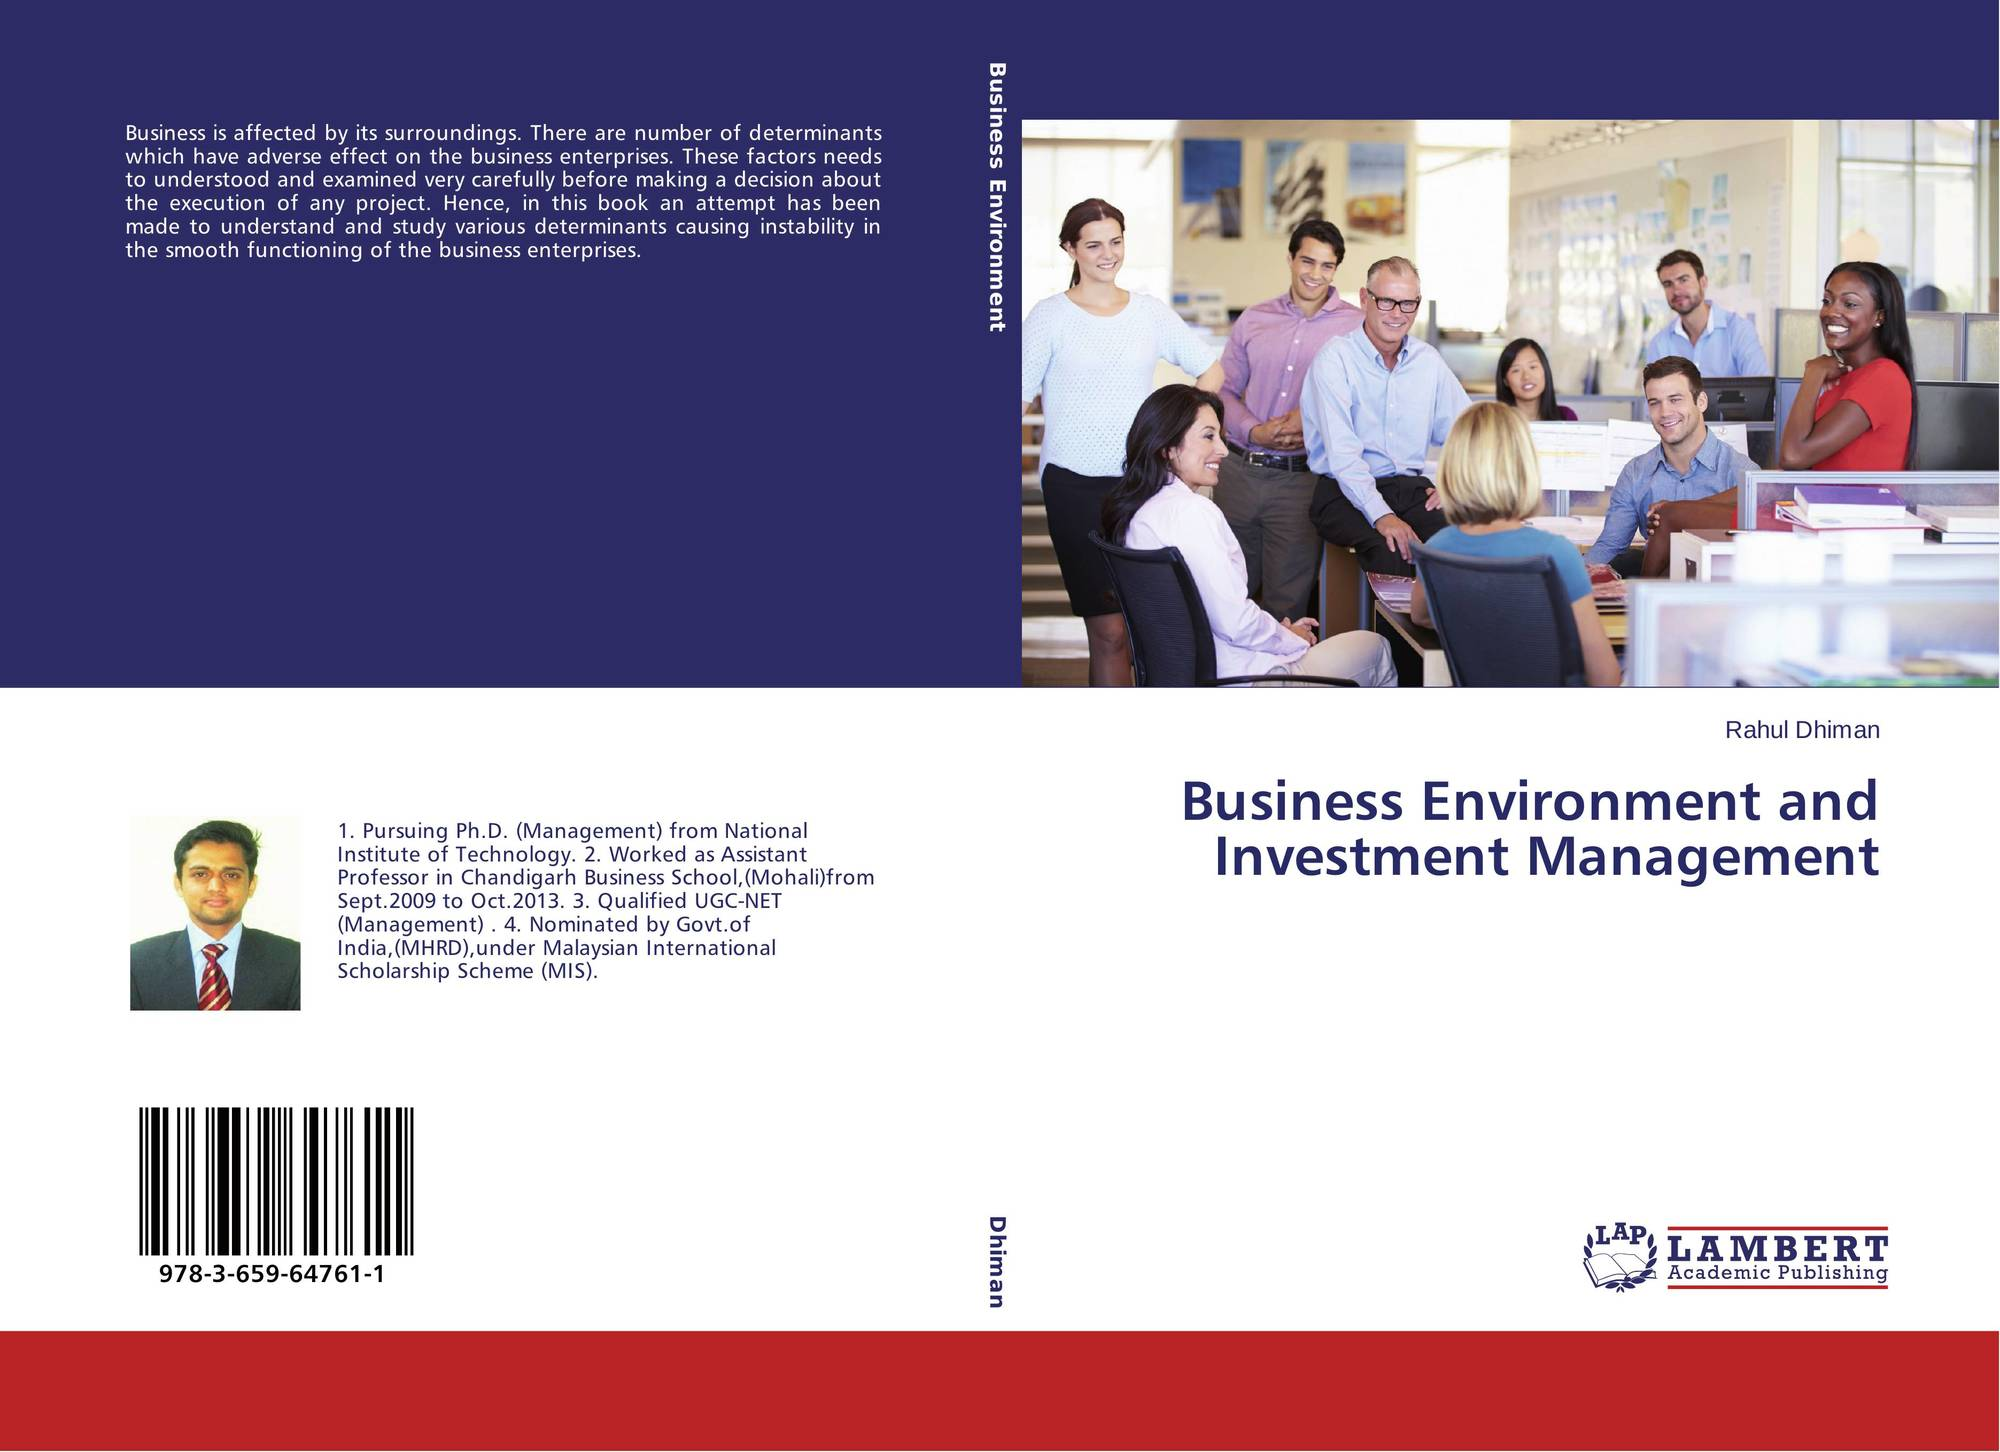 performance of various behaviors of the management Principles of management are concerned with organization-level outcomes such as economic, social, or environmental performance, innovation, or ability to change and adapt.